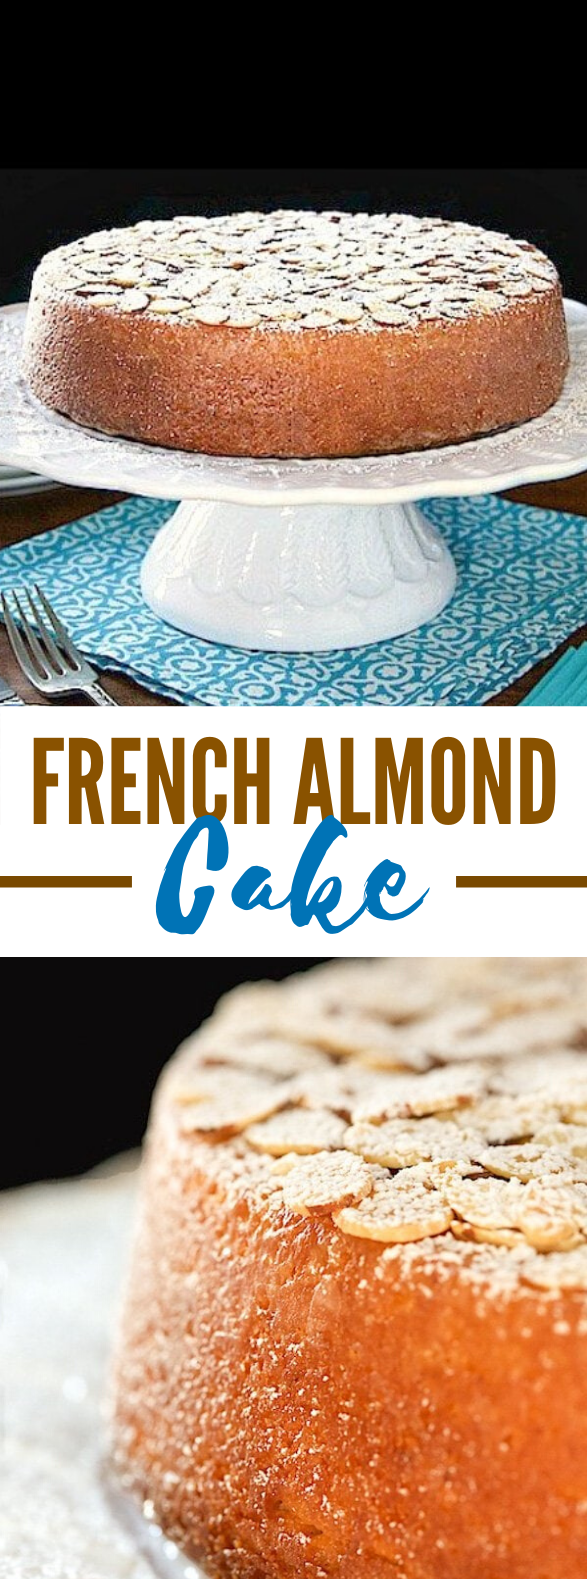 Easy French Almond Cake #desserts #christmas